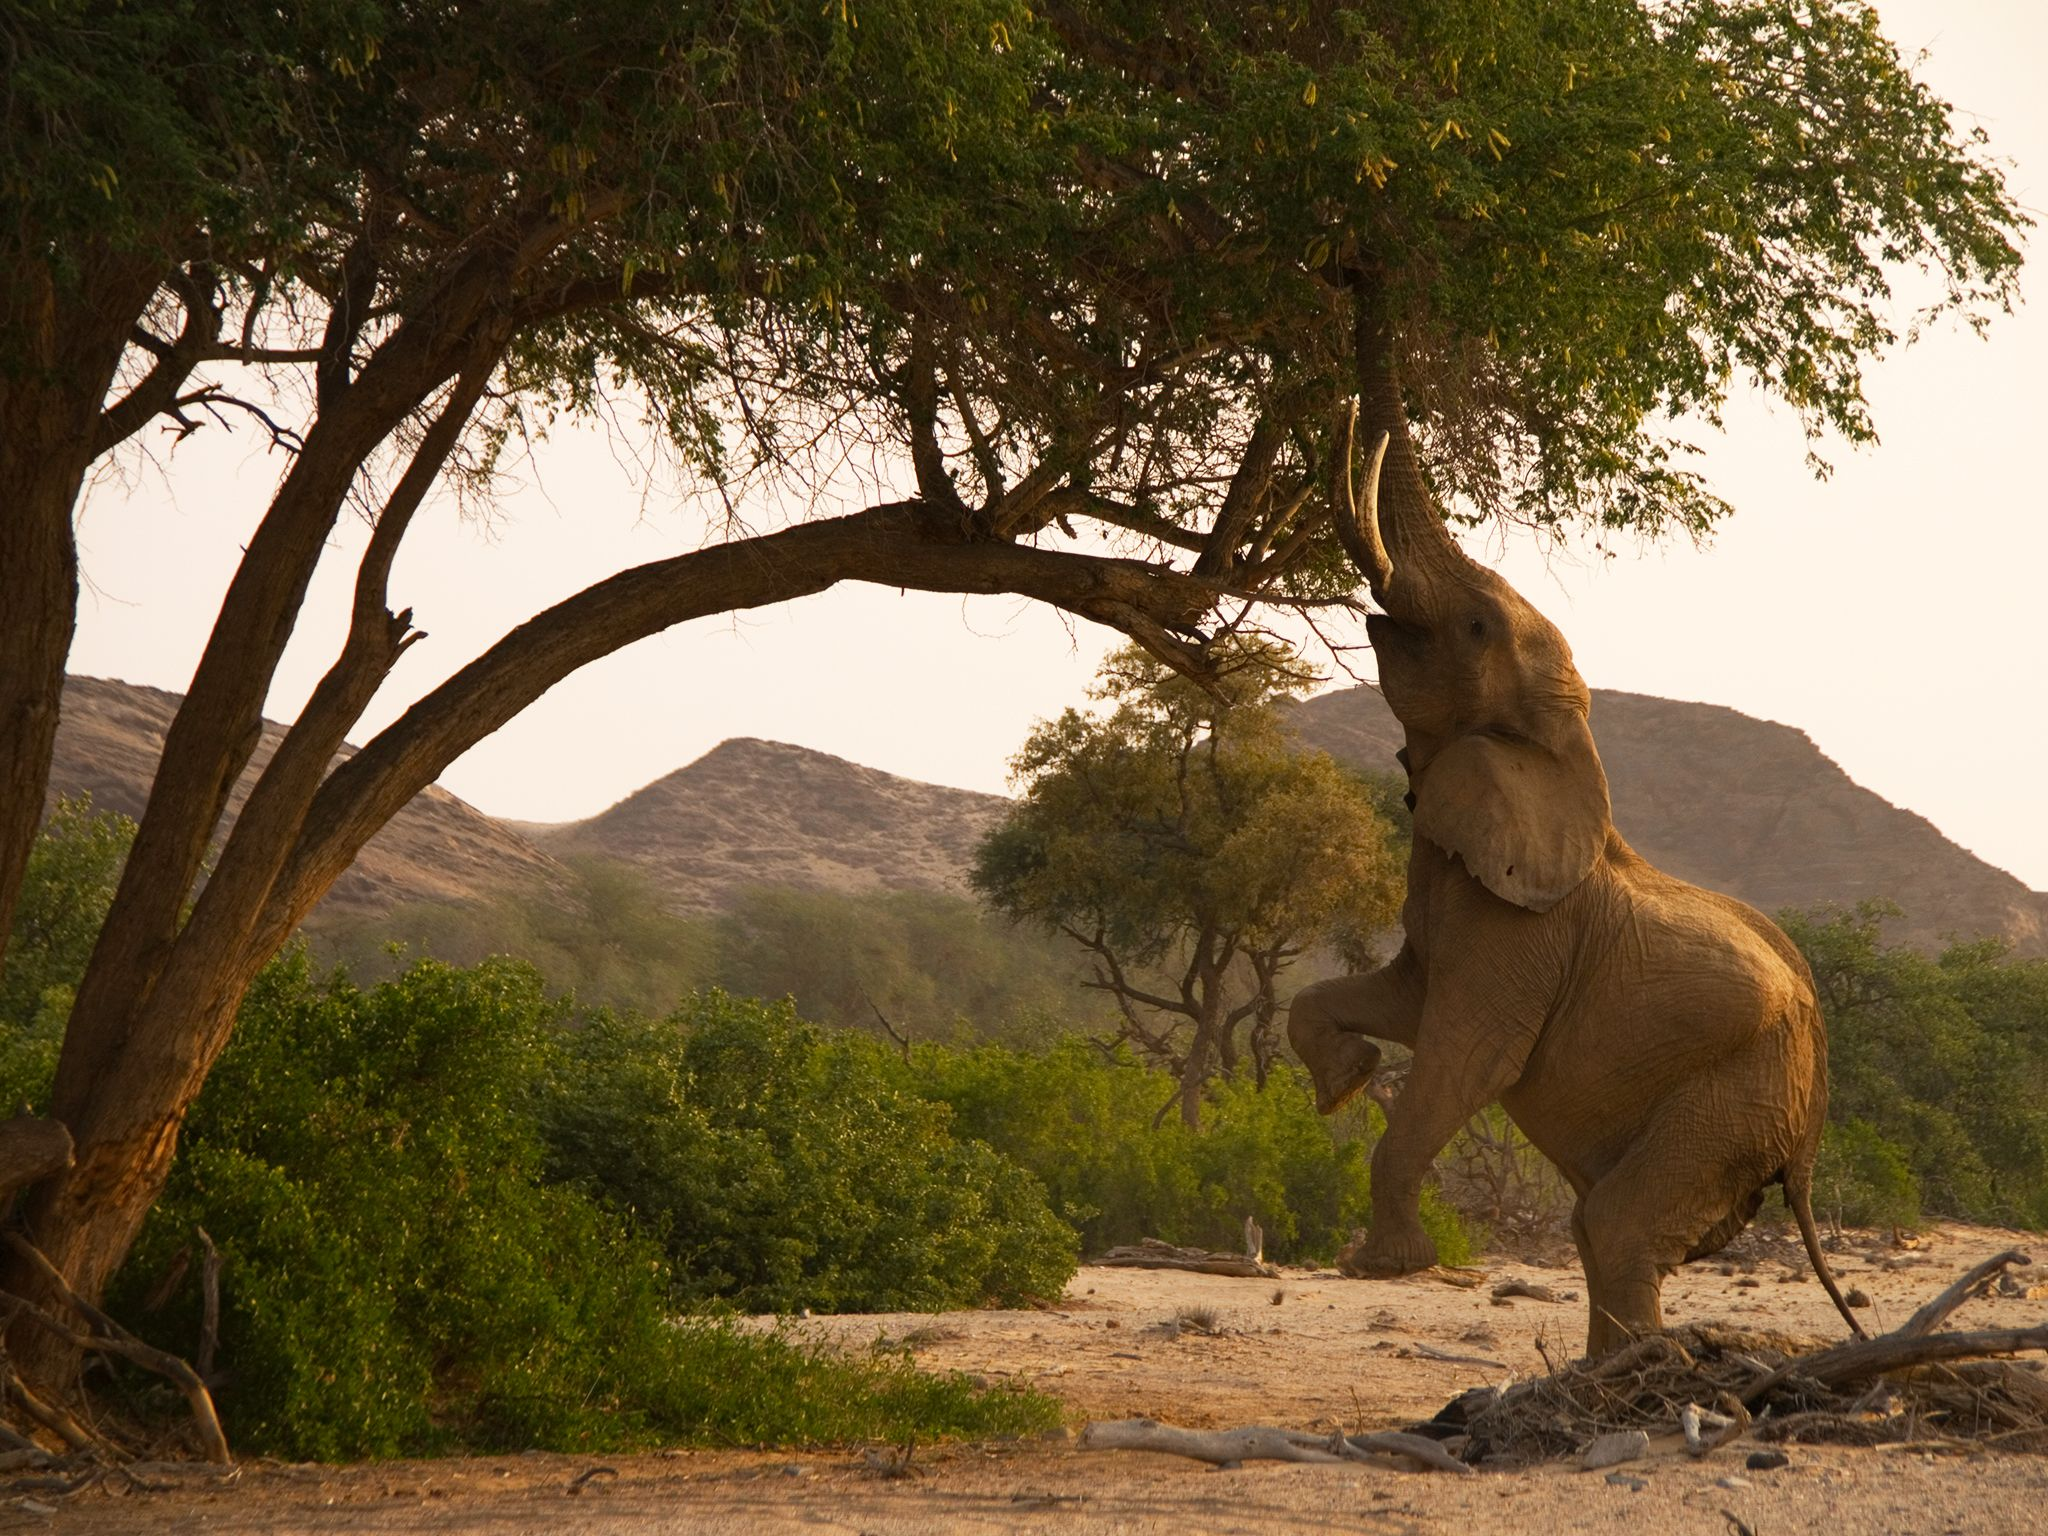 Elephant standing on its hind legs to reach tree leaves. This image is from Wild Namibia. [Photo of the day - سپتامبر 2014]